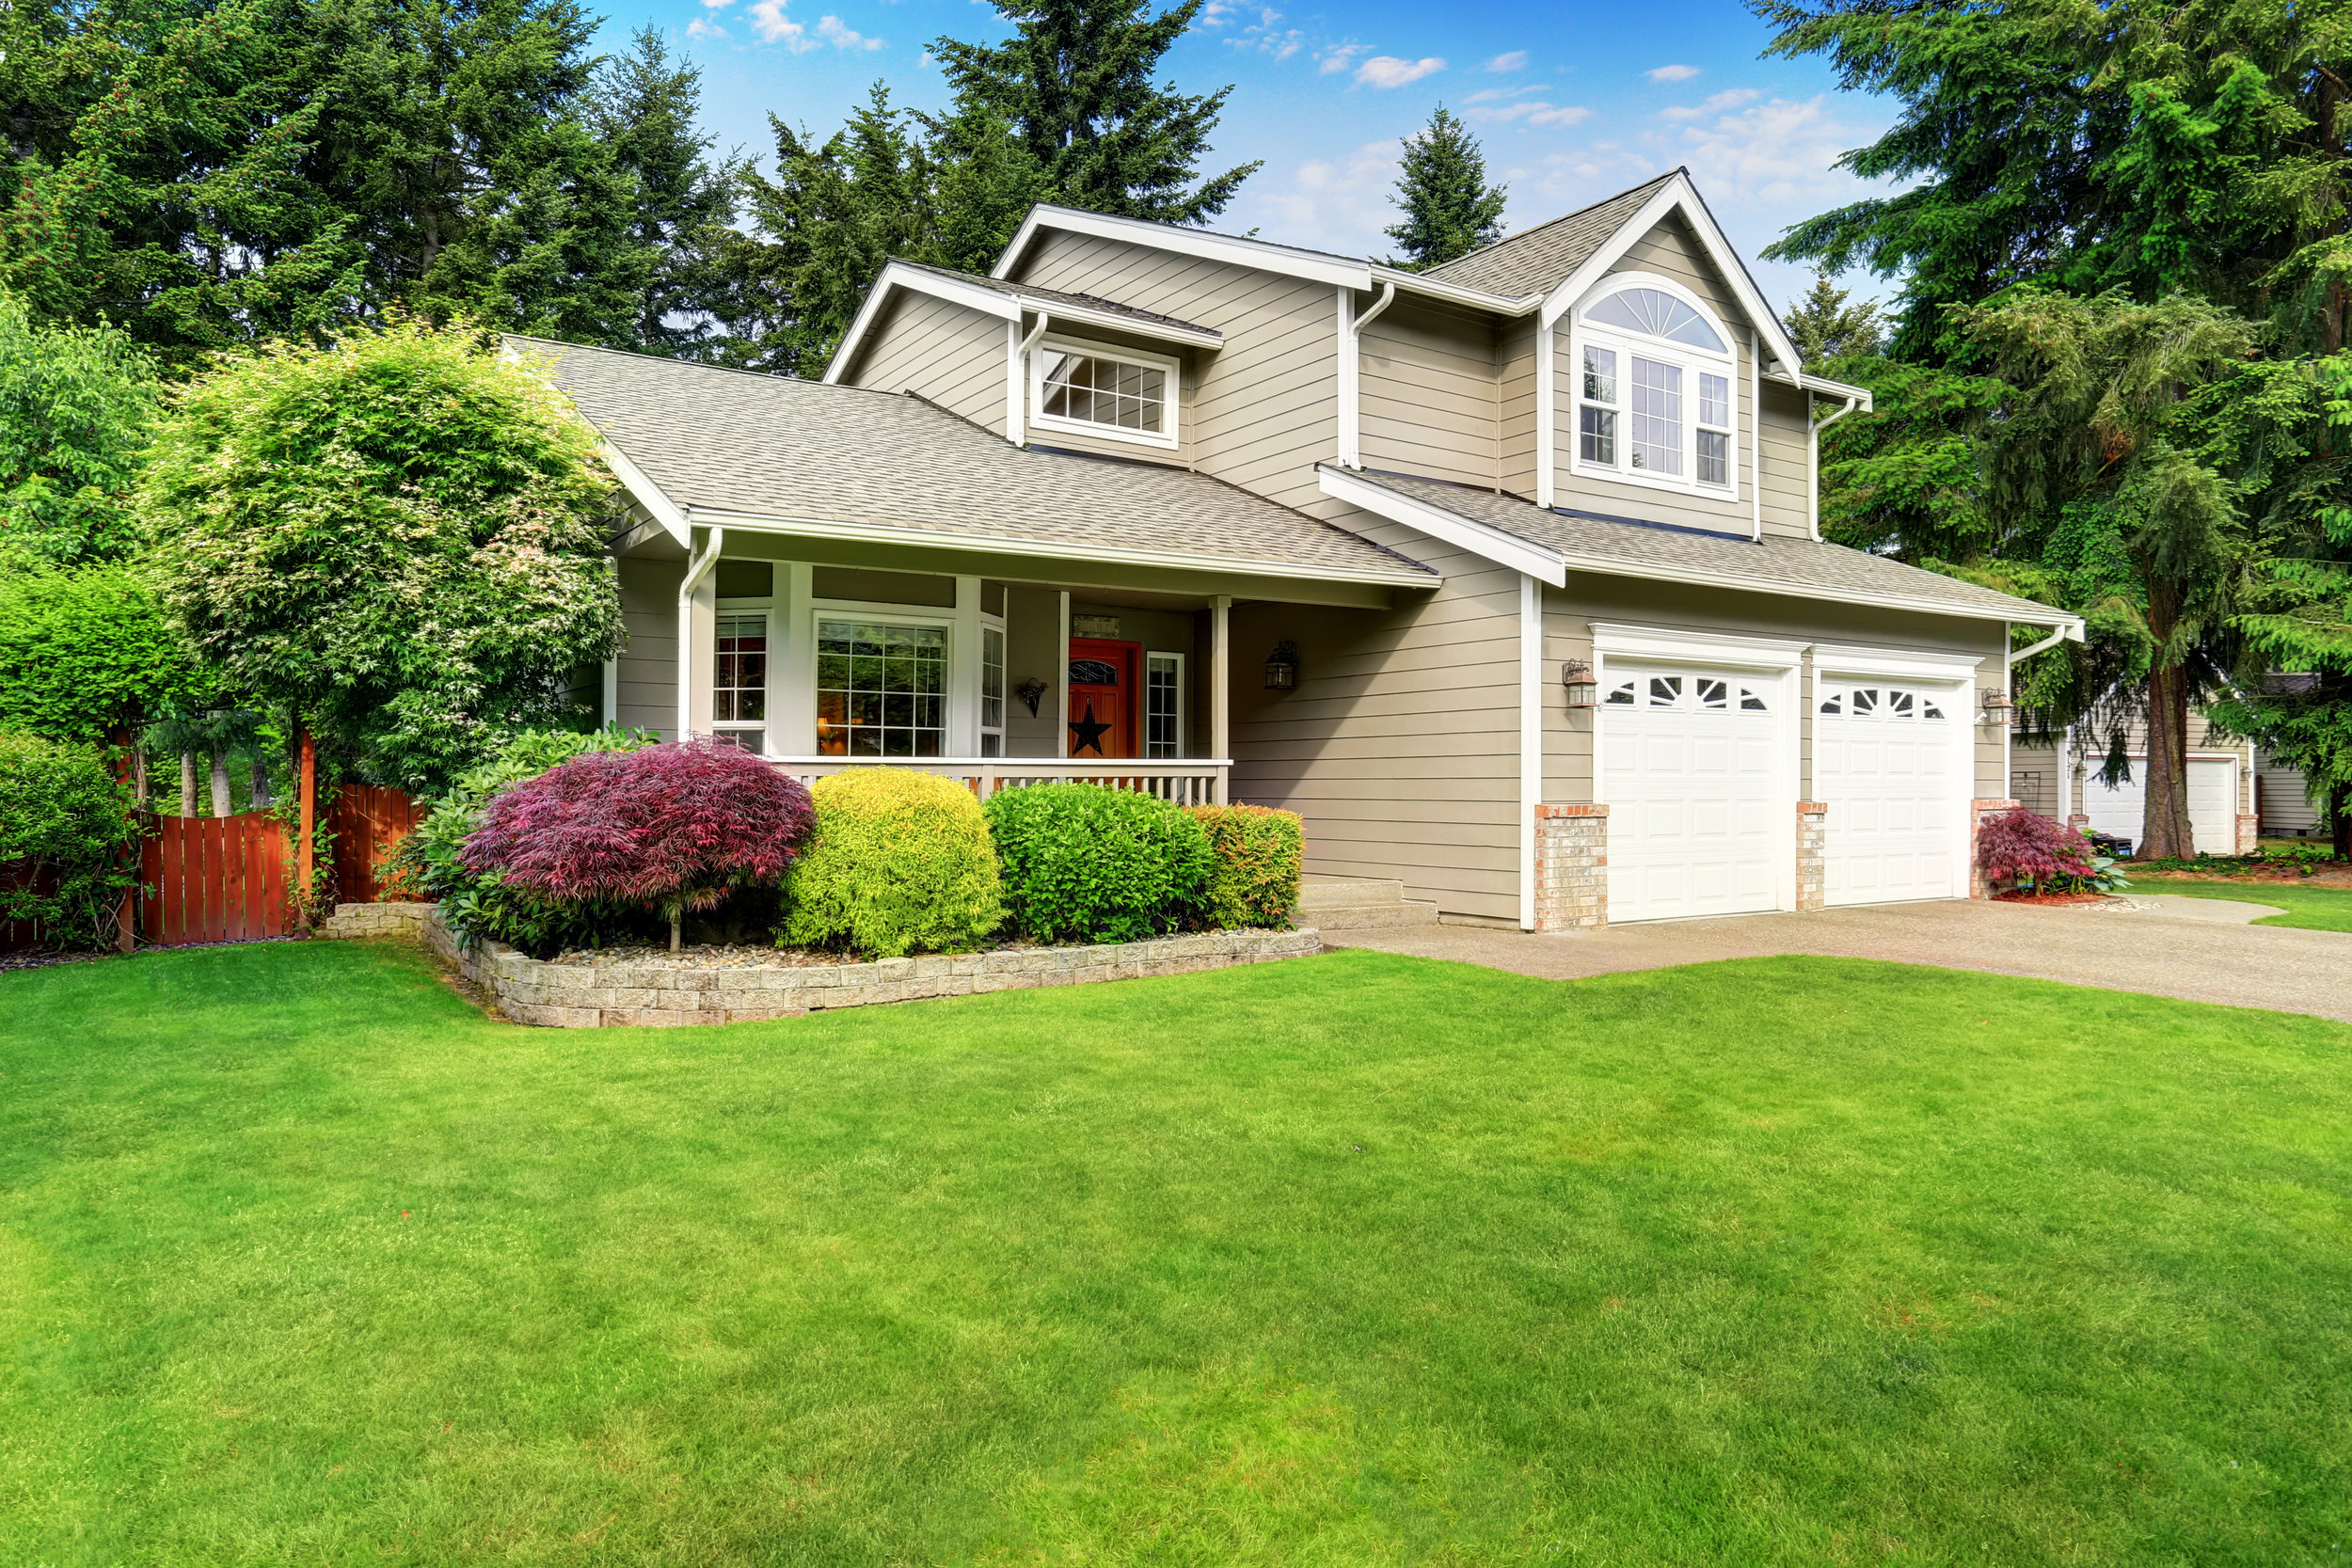 bigstock-American-House-Exterior-With-D-143109110.jpg